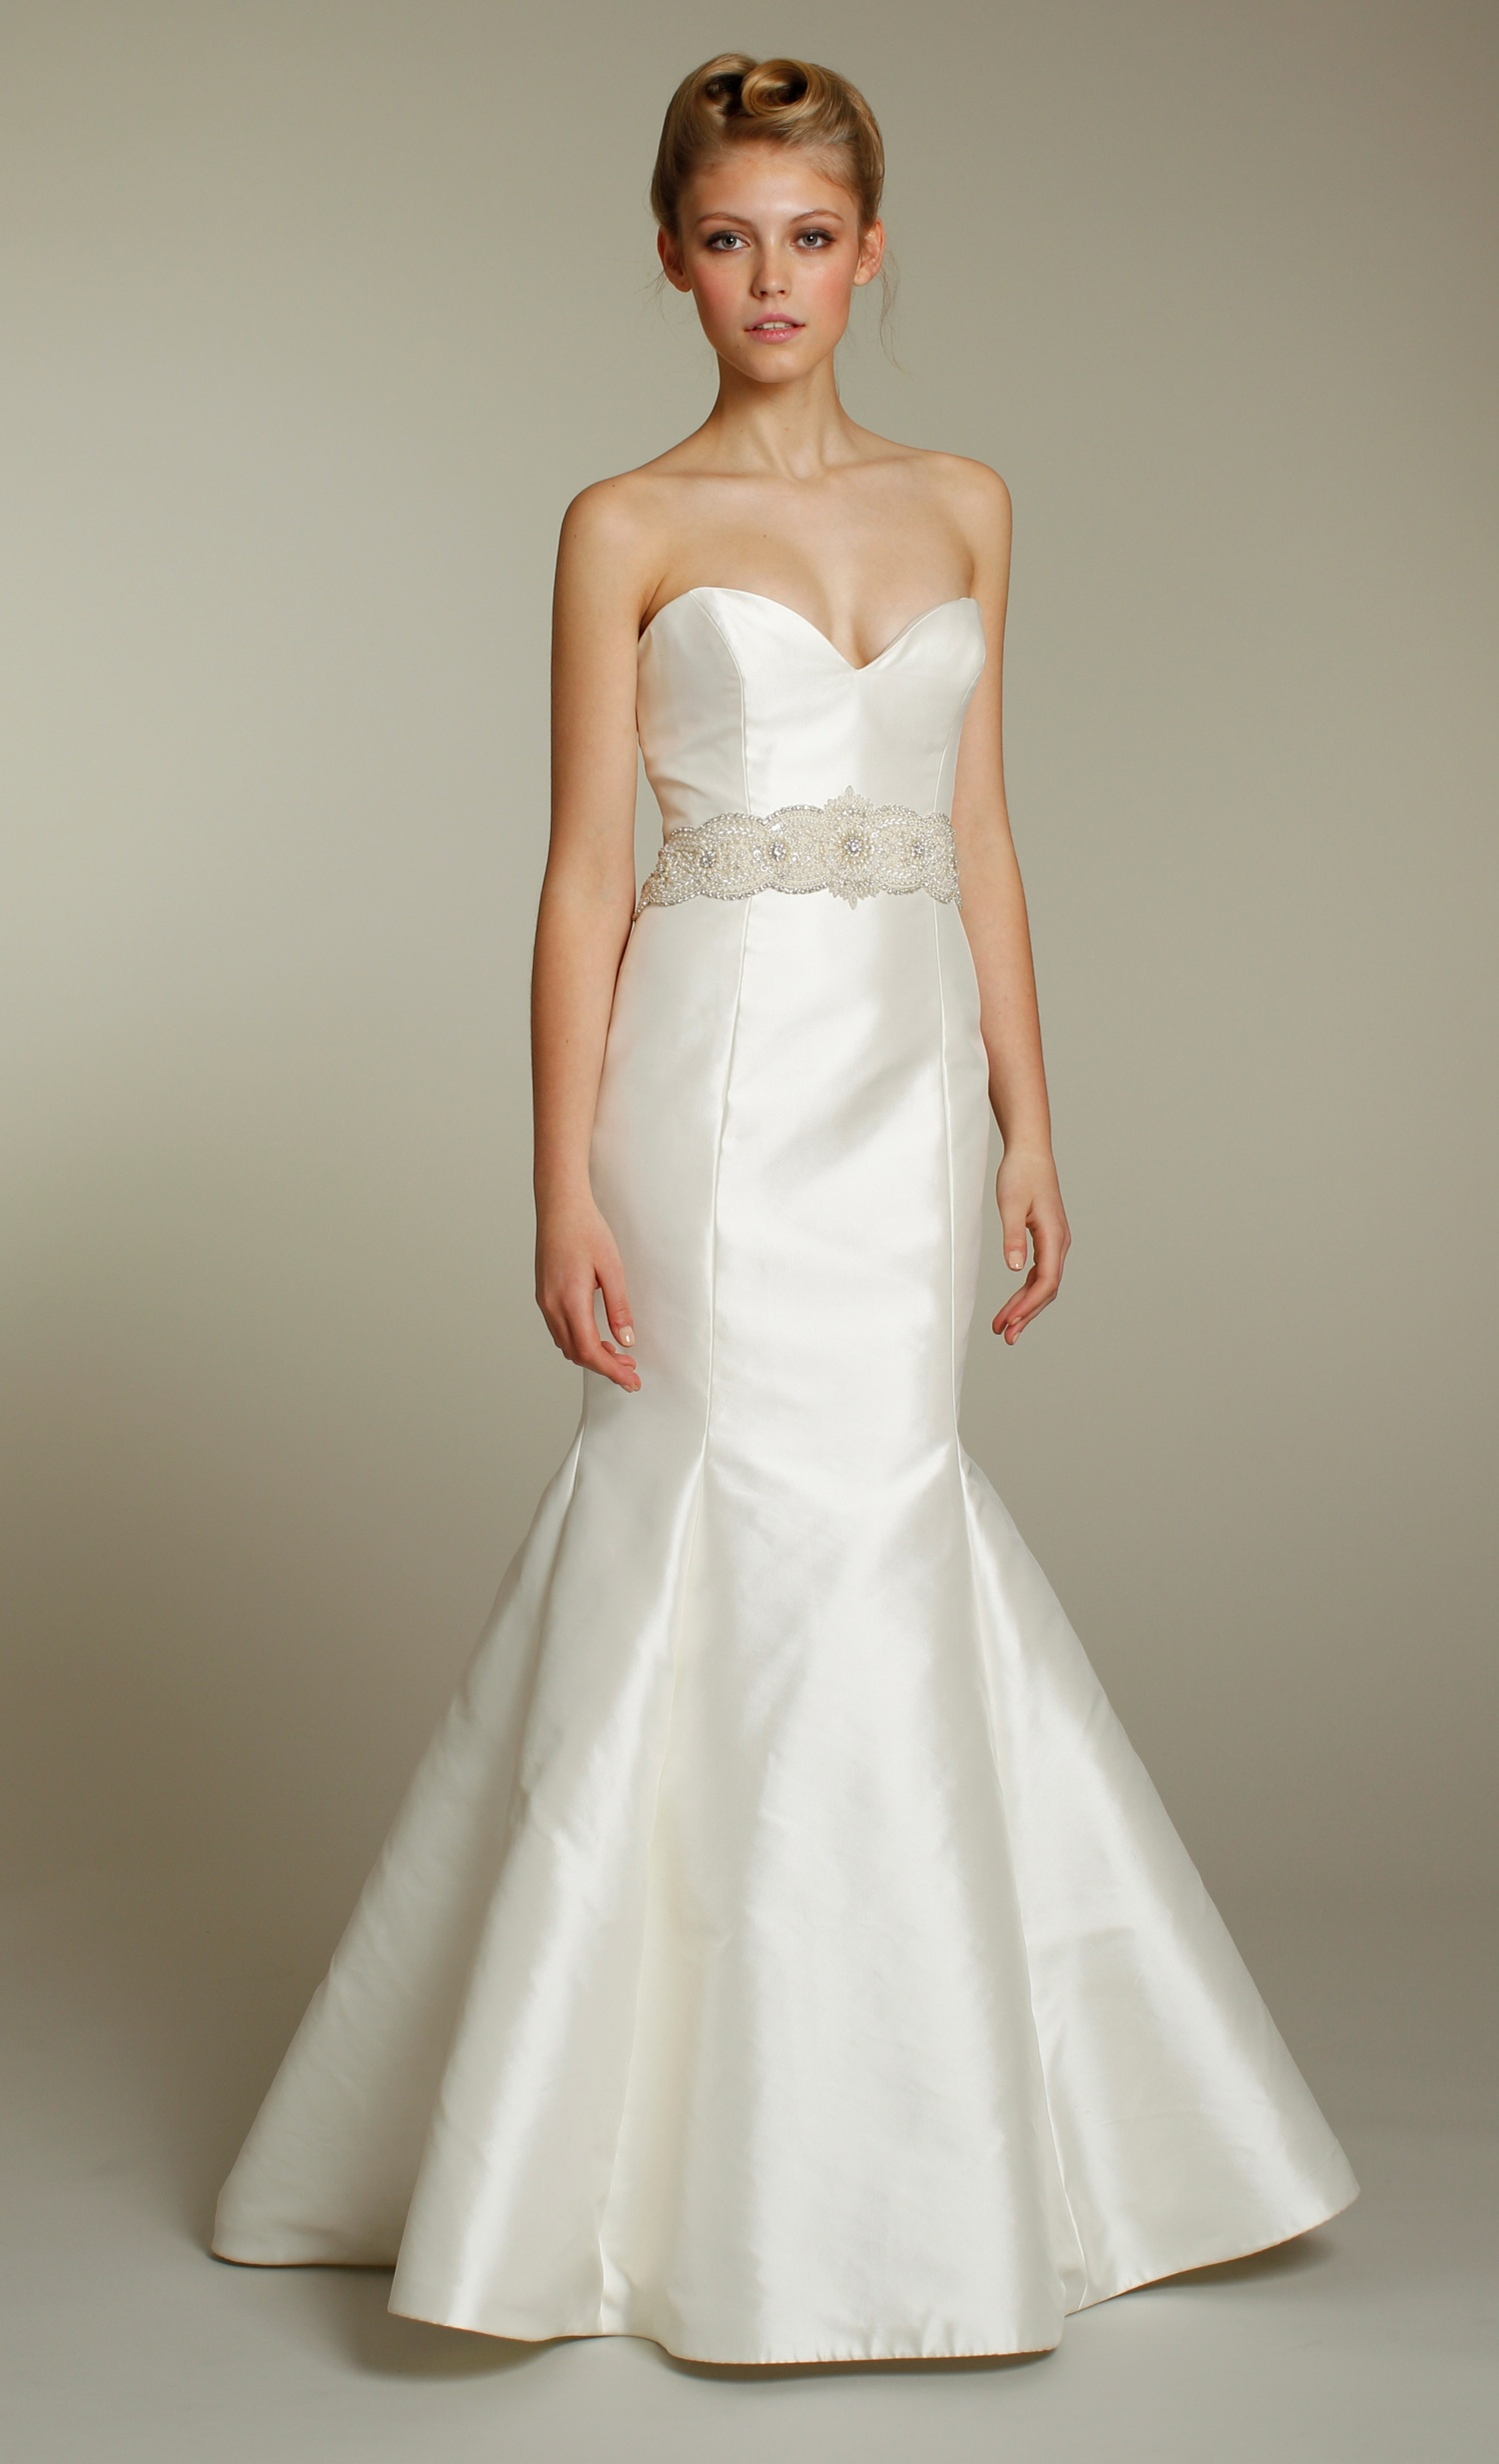 2155-wedding-dress-fall-2011-bridal-gowns-drop-waist-mermaid-embellished-sash.original